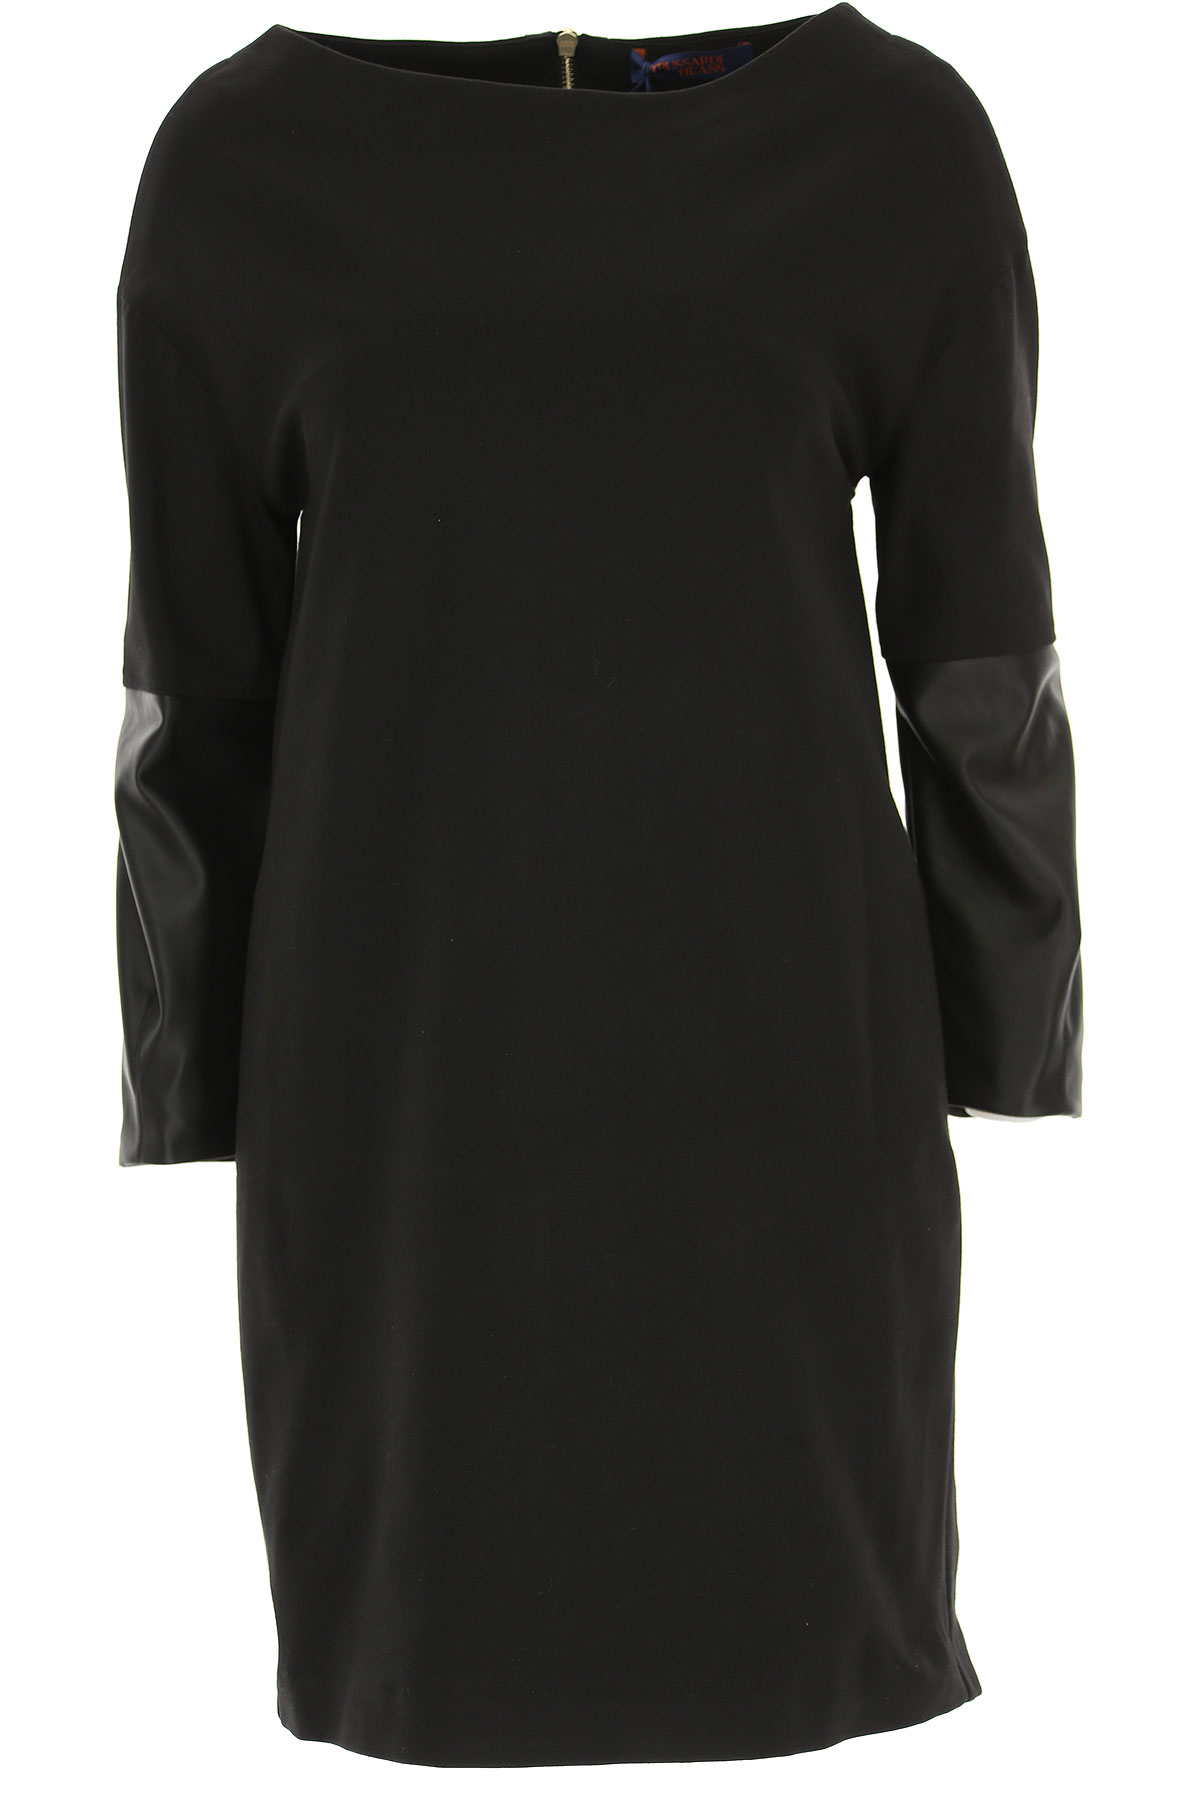 Image of Trussardi Dress for Women, Evening Cocktail Party, Black, Viscose, 2017, 2 4 6 8